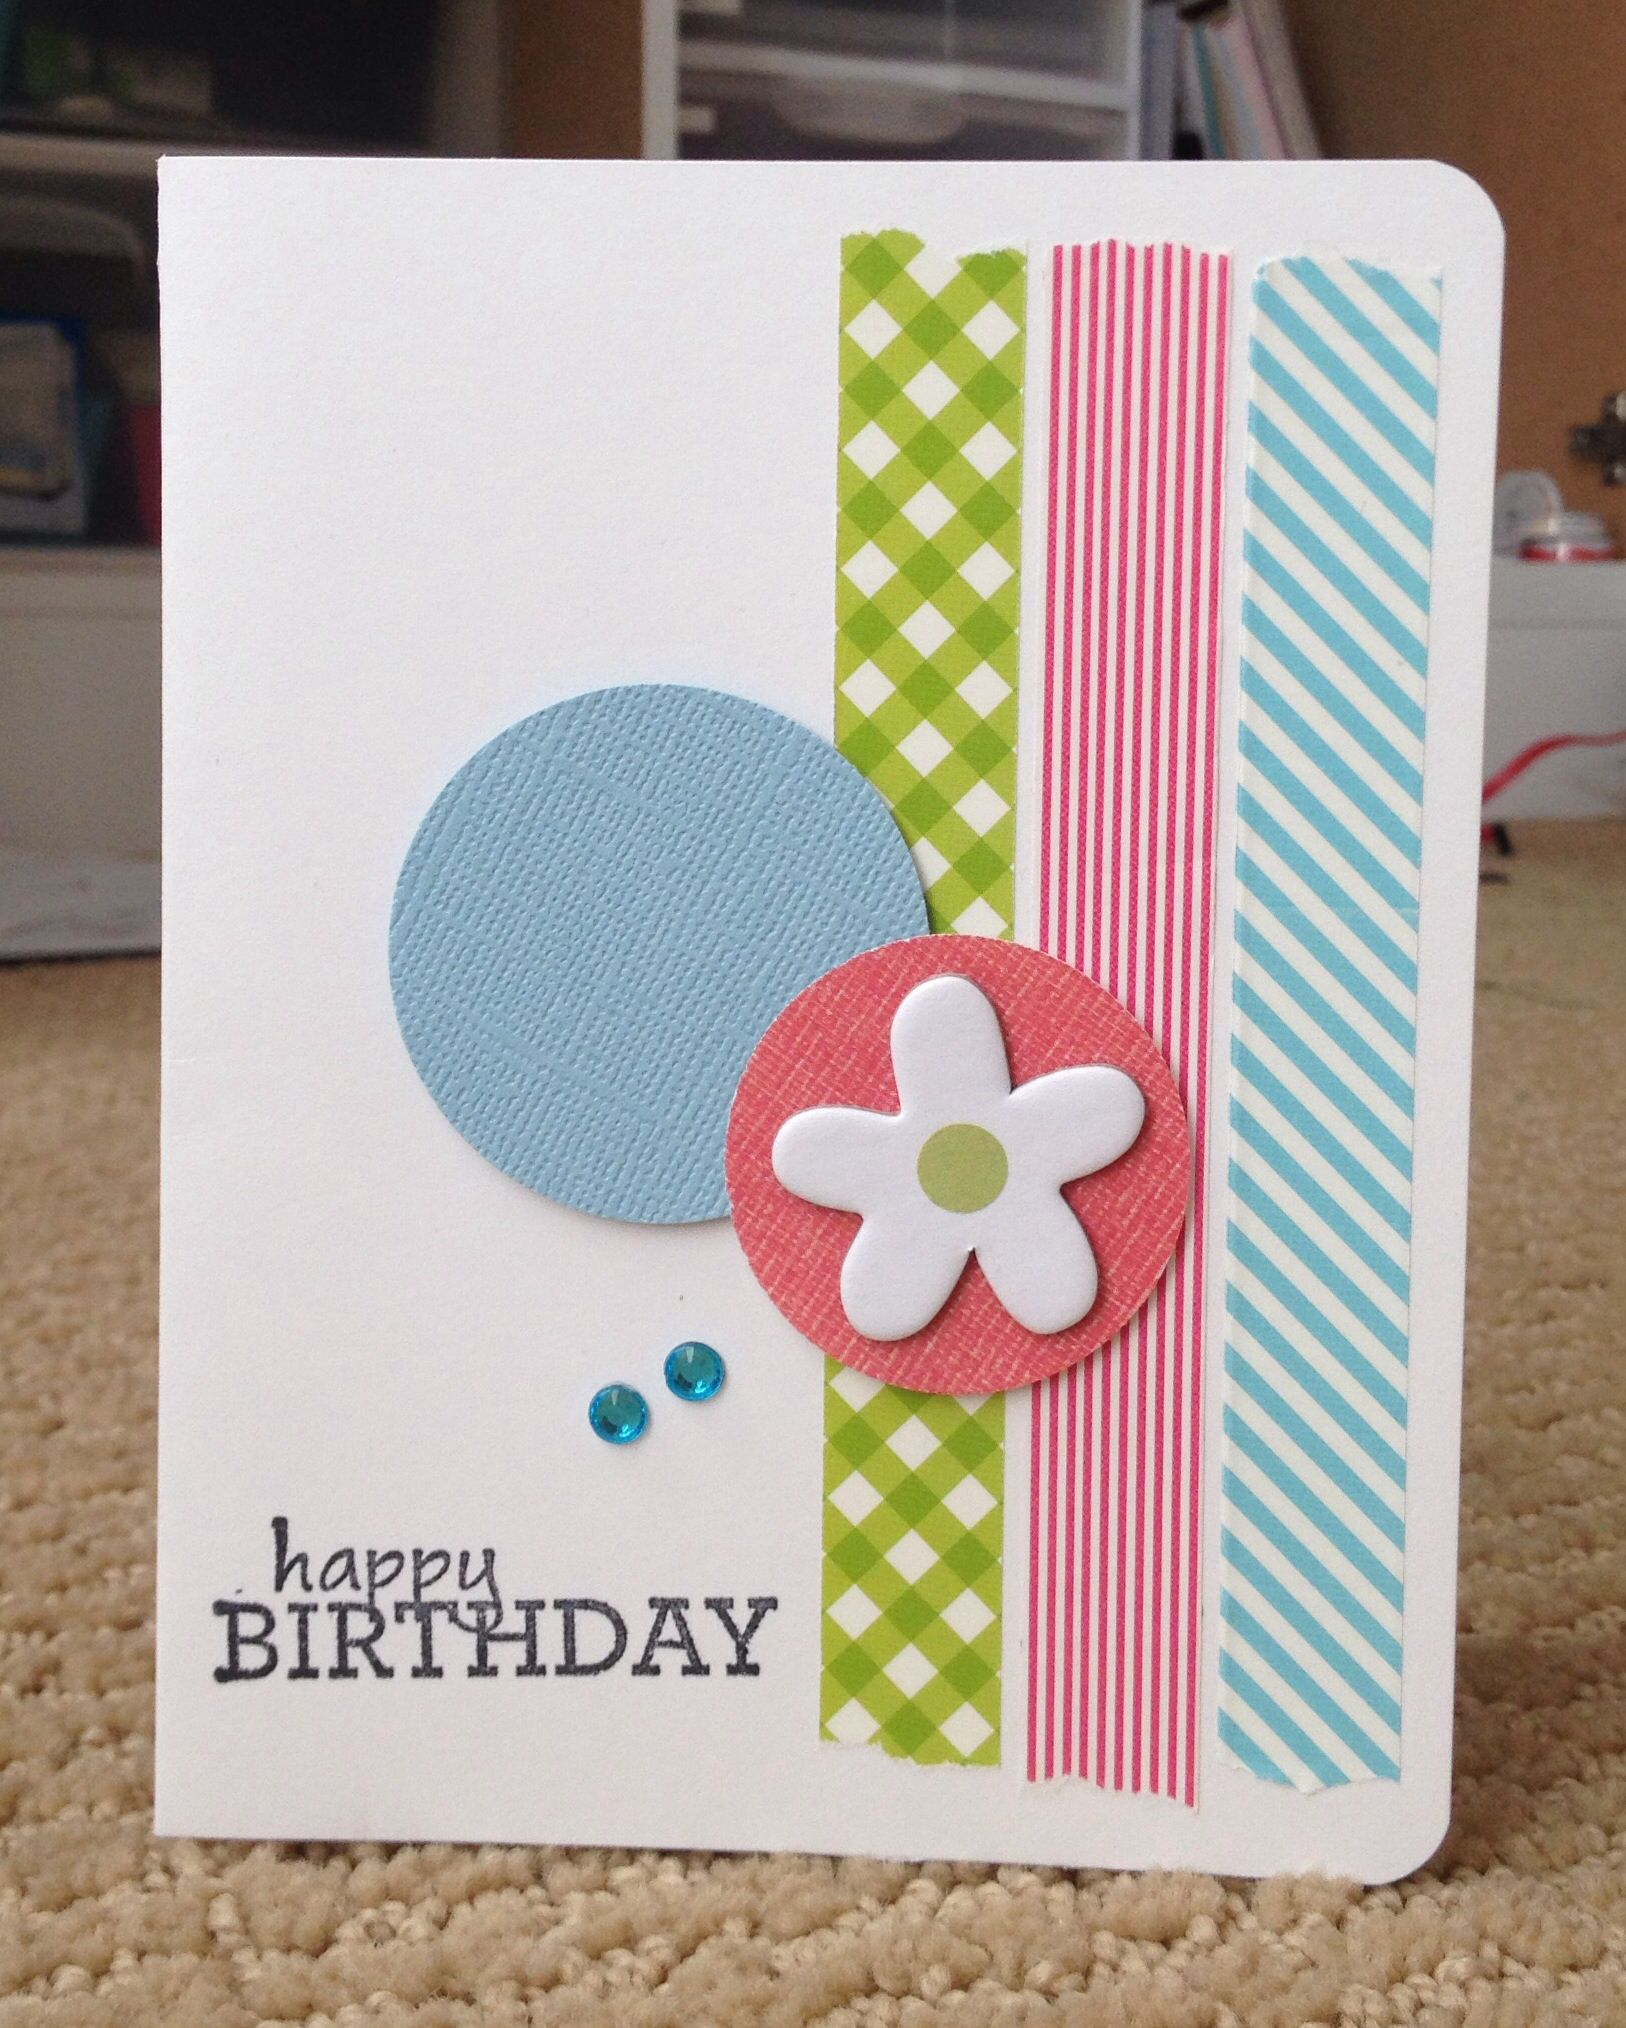 Card Making Ideas Using Washi Tape Part - 30: Birthday Card Made With Dollar Store Washi Tape